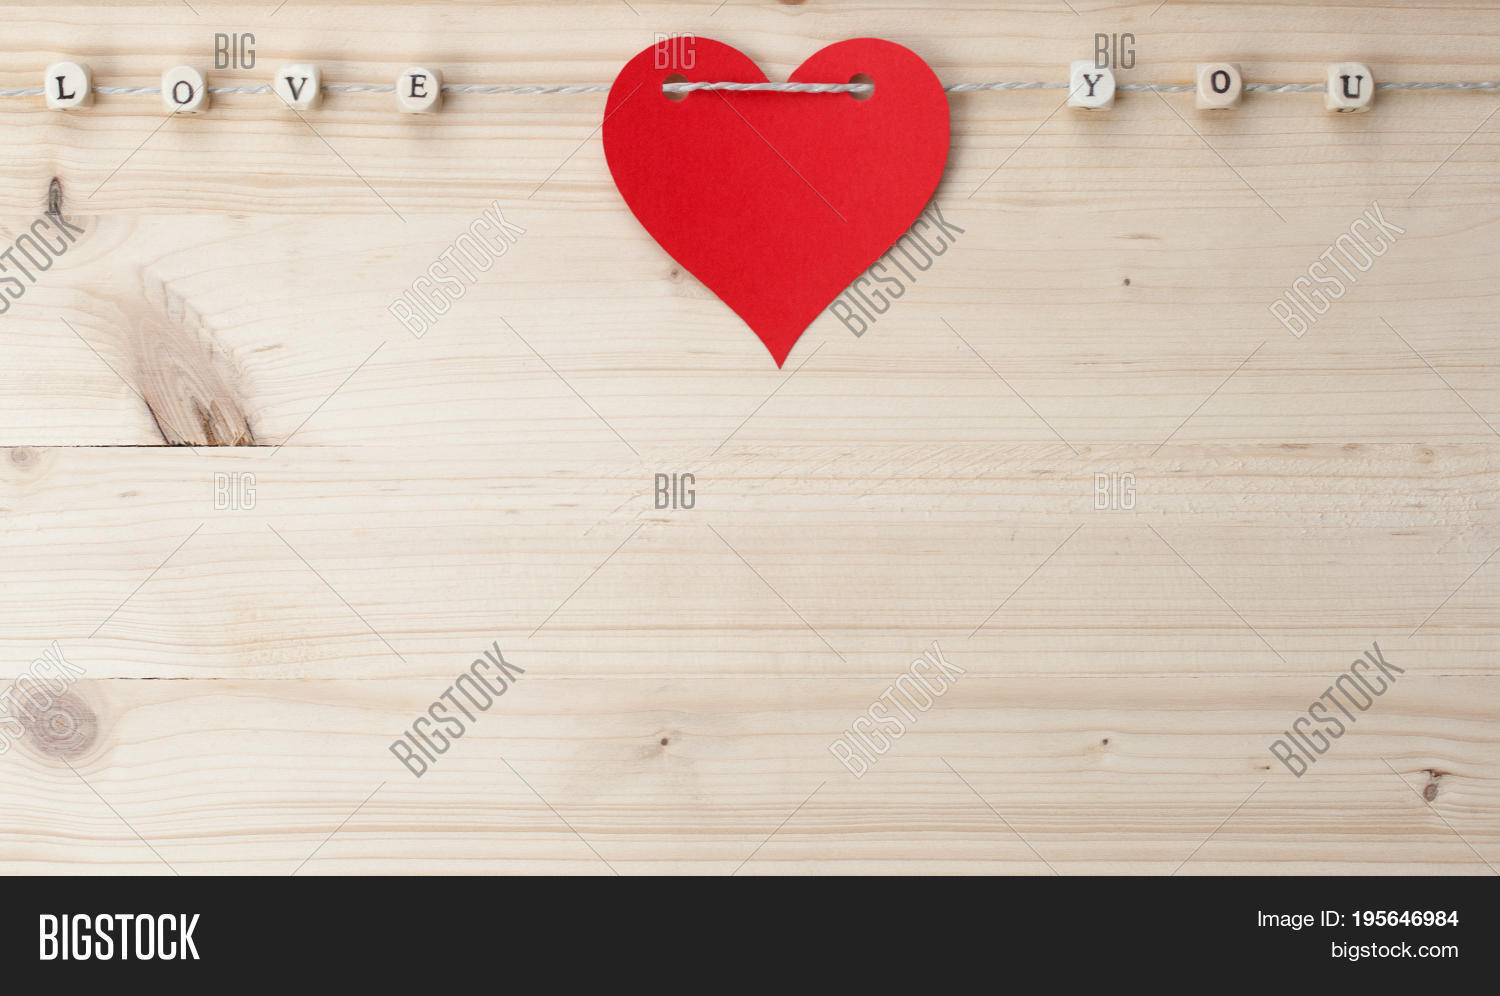 Love mothers day valentines day image photo bigstock love mothers day valentines day love cord symbol symbolic buycottarizona Image collections